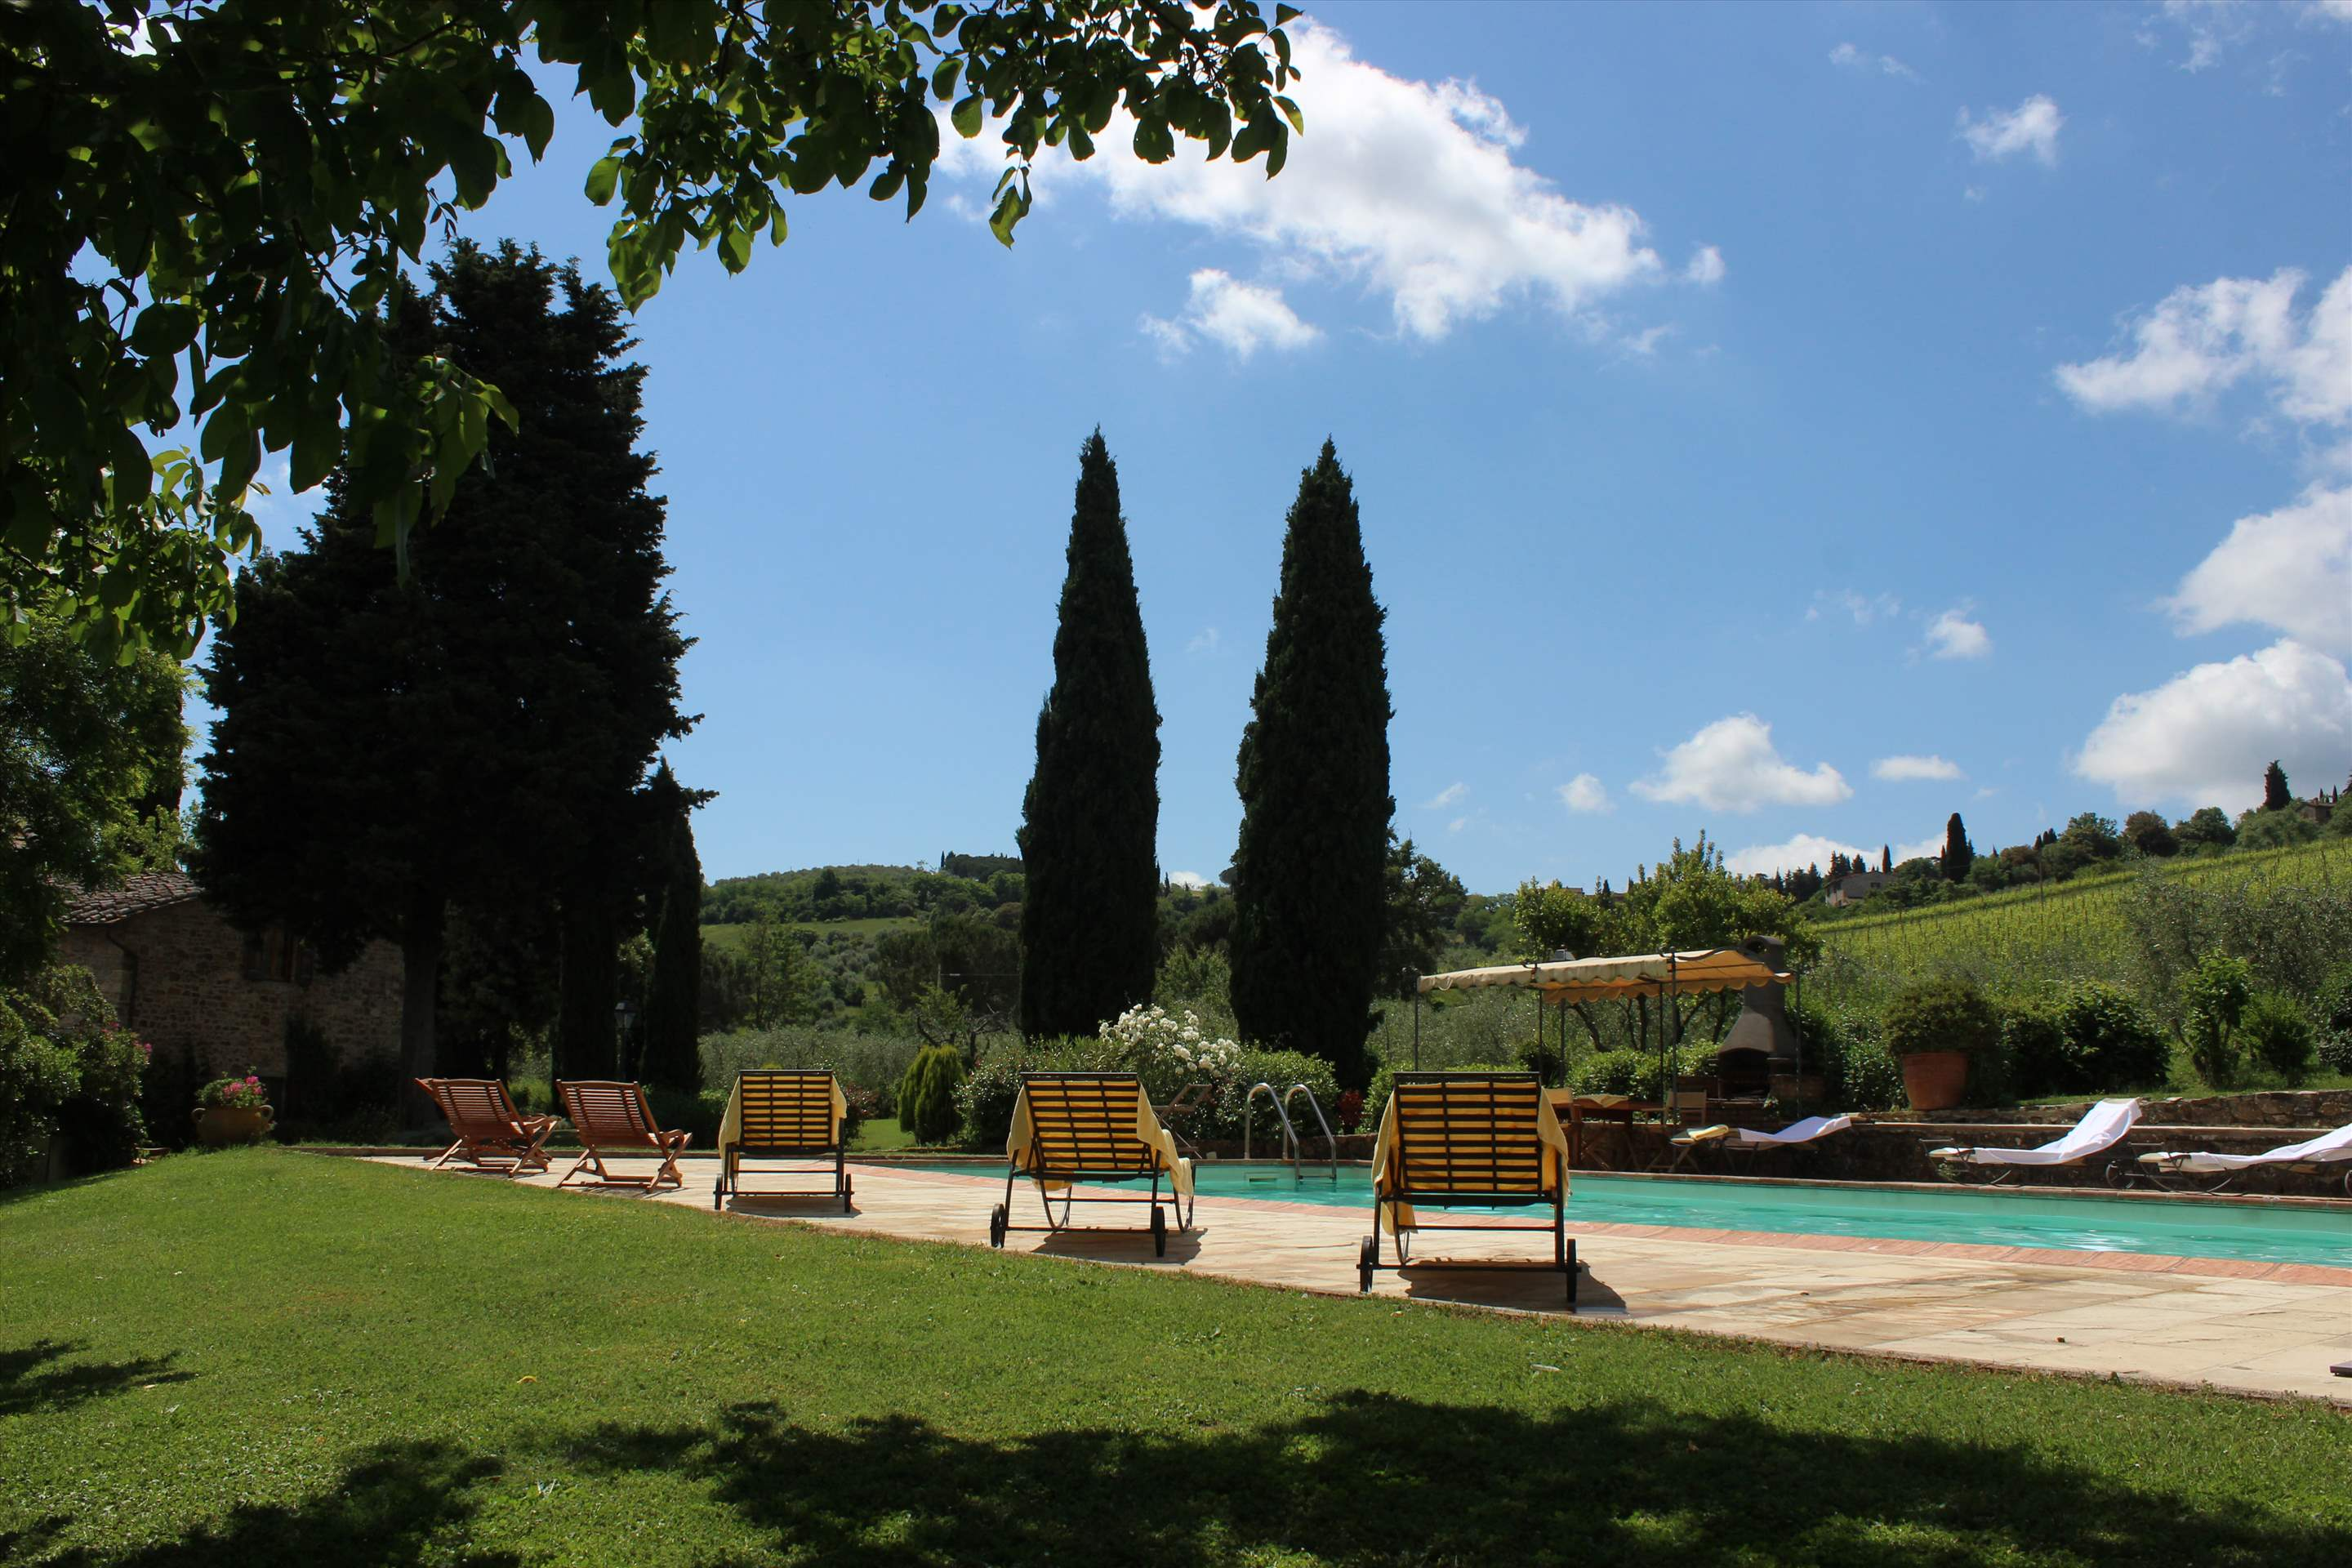 Villa Campana, 5 bedroom villa in Chianti & Countryside, Tuscany Photo #1